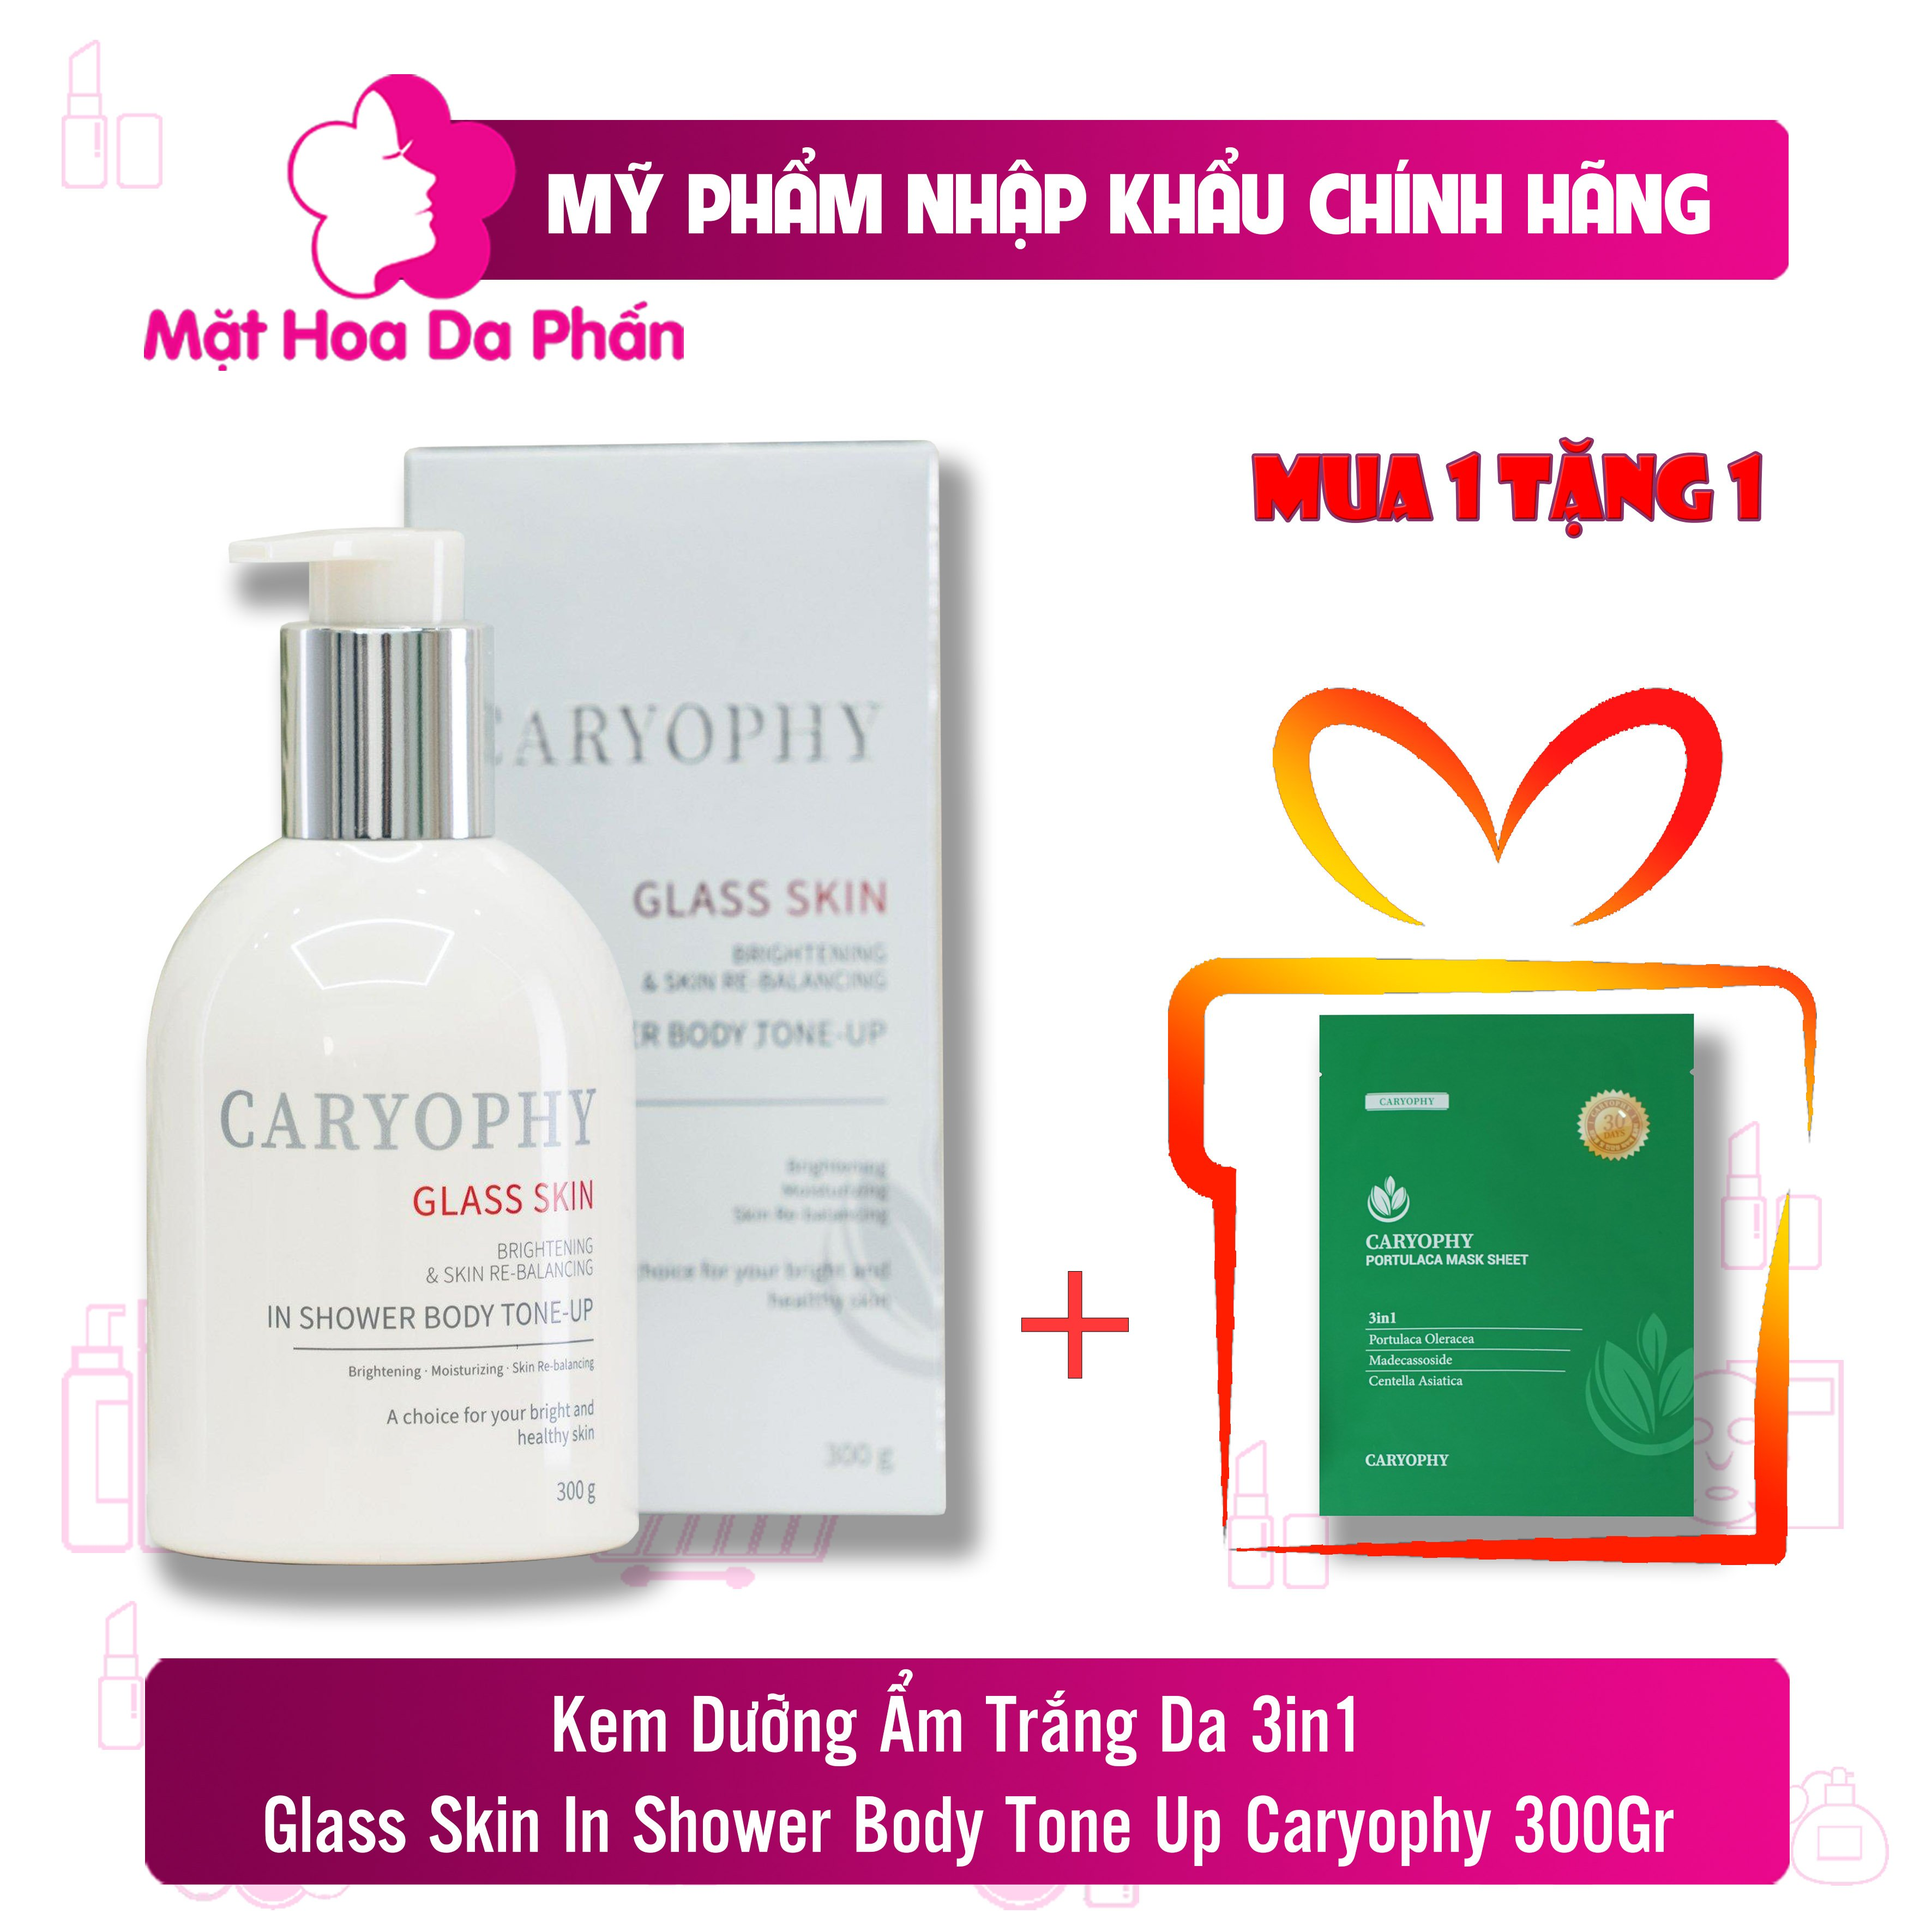 Dưỡng Trắng Caryophy Glass Skin In Shower Body Tone Up 300g